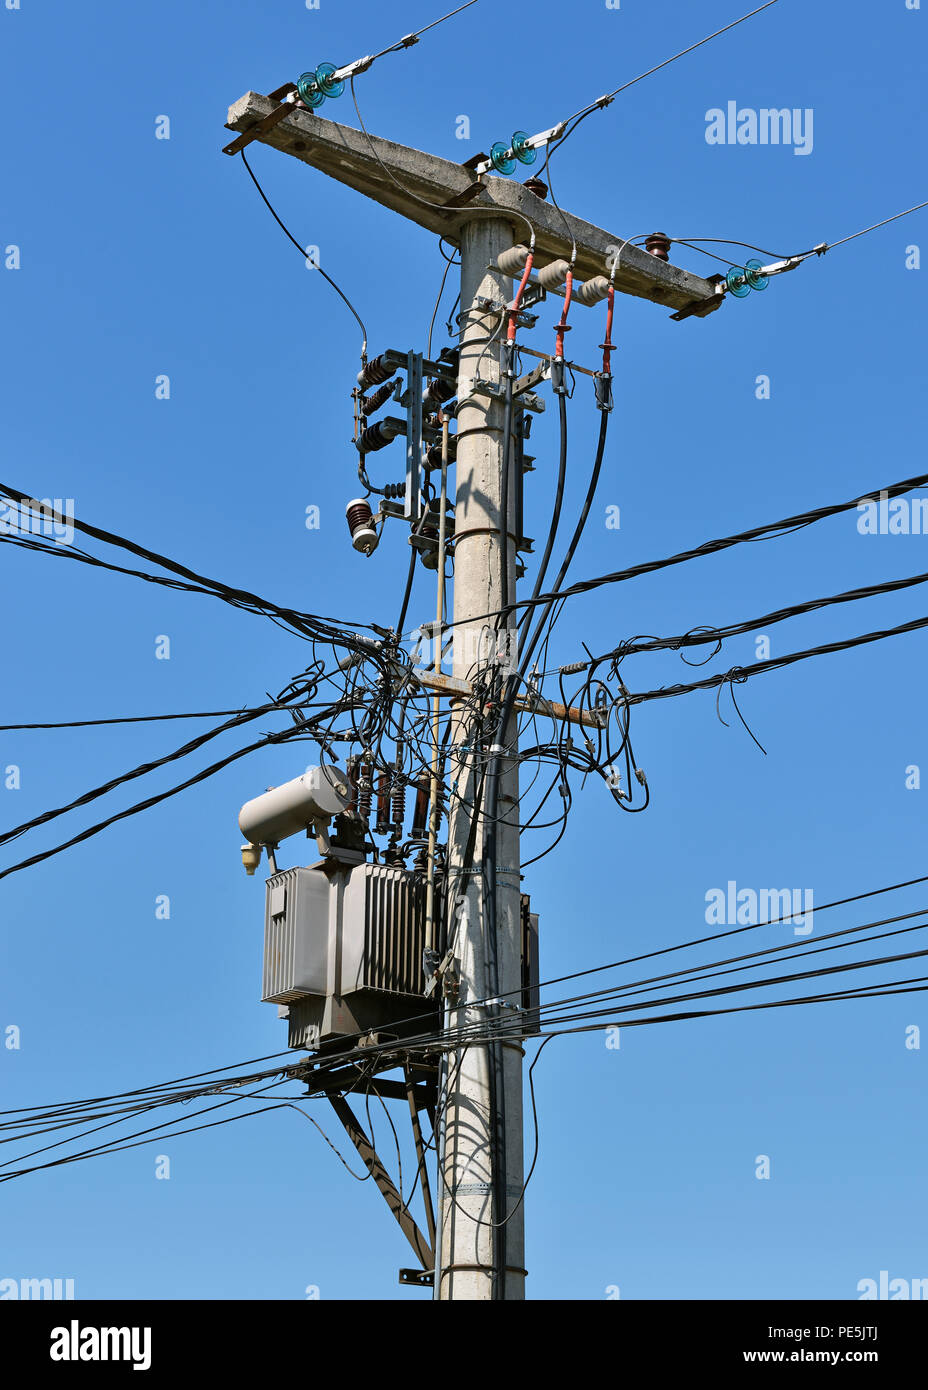 Utility Pole with Overhead Power Lines and a Transformer, Serbia - Stock Image